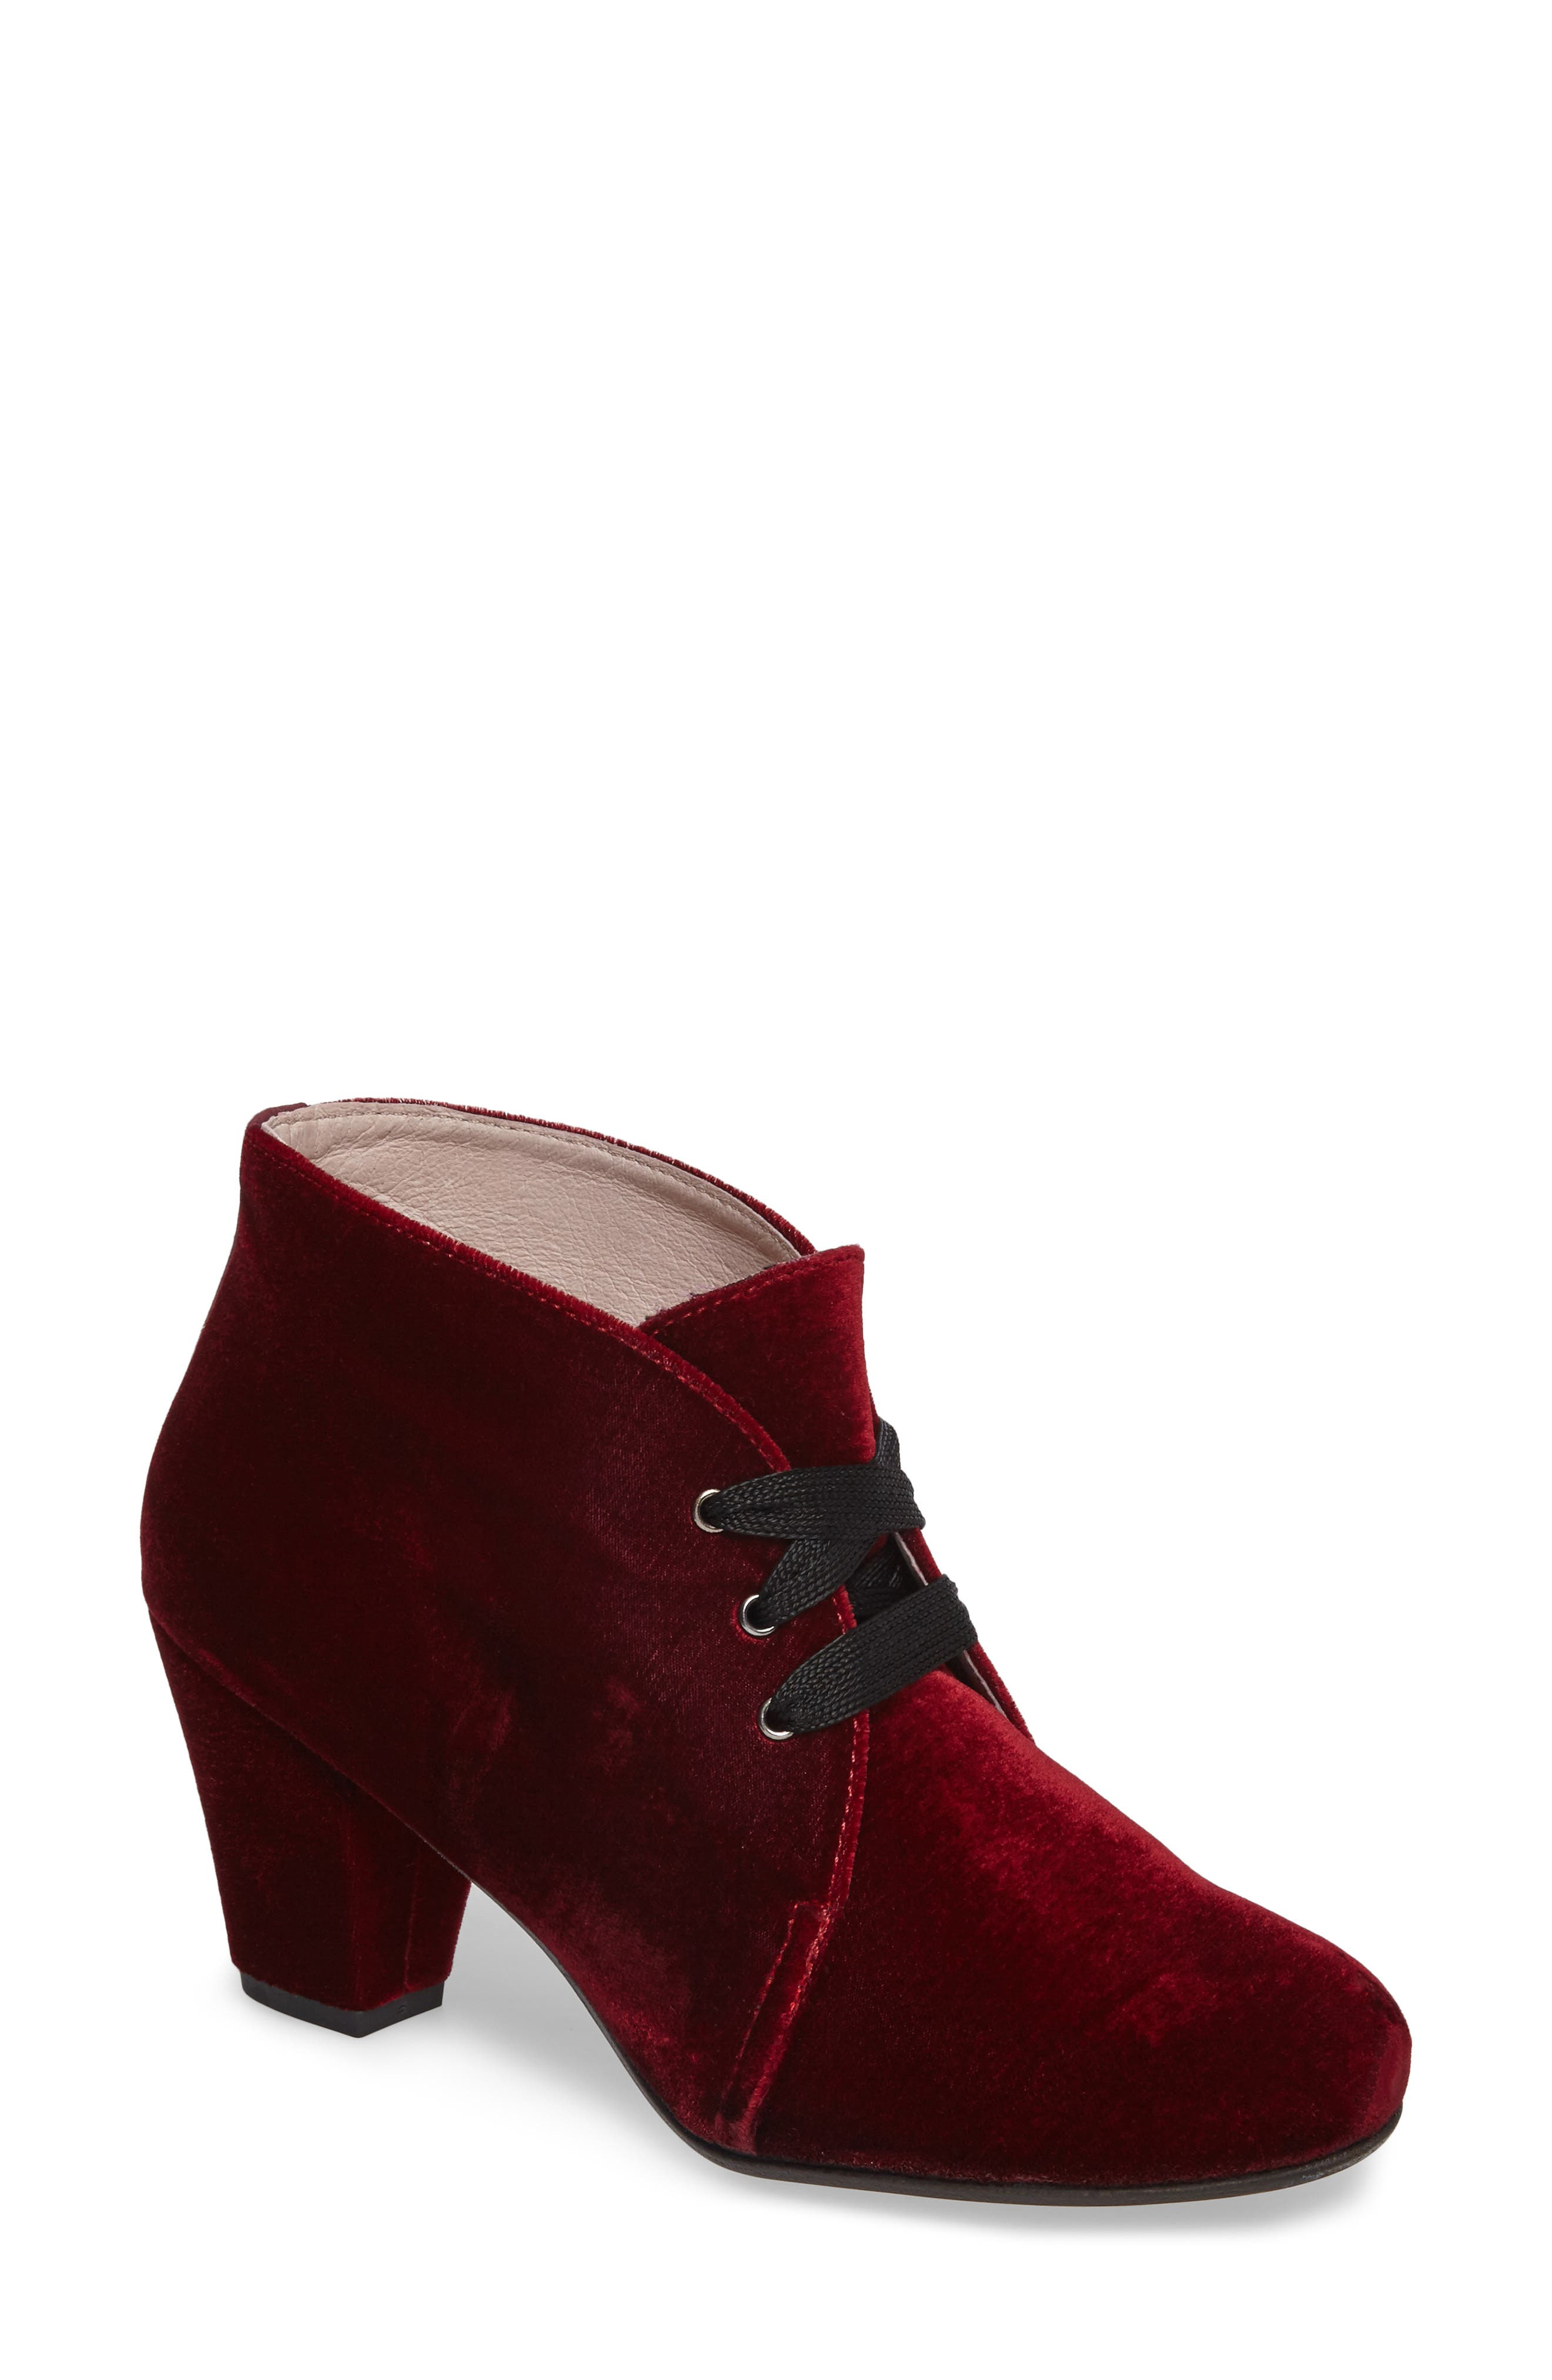 Clair Lace-Up Bootie,                         Main,                         color, Burgundy Velvet Fabric